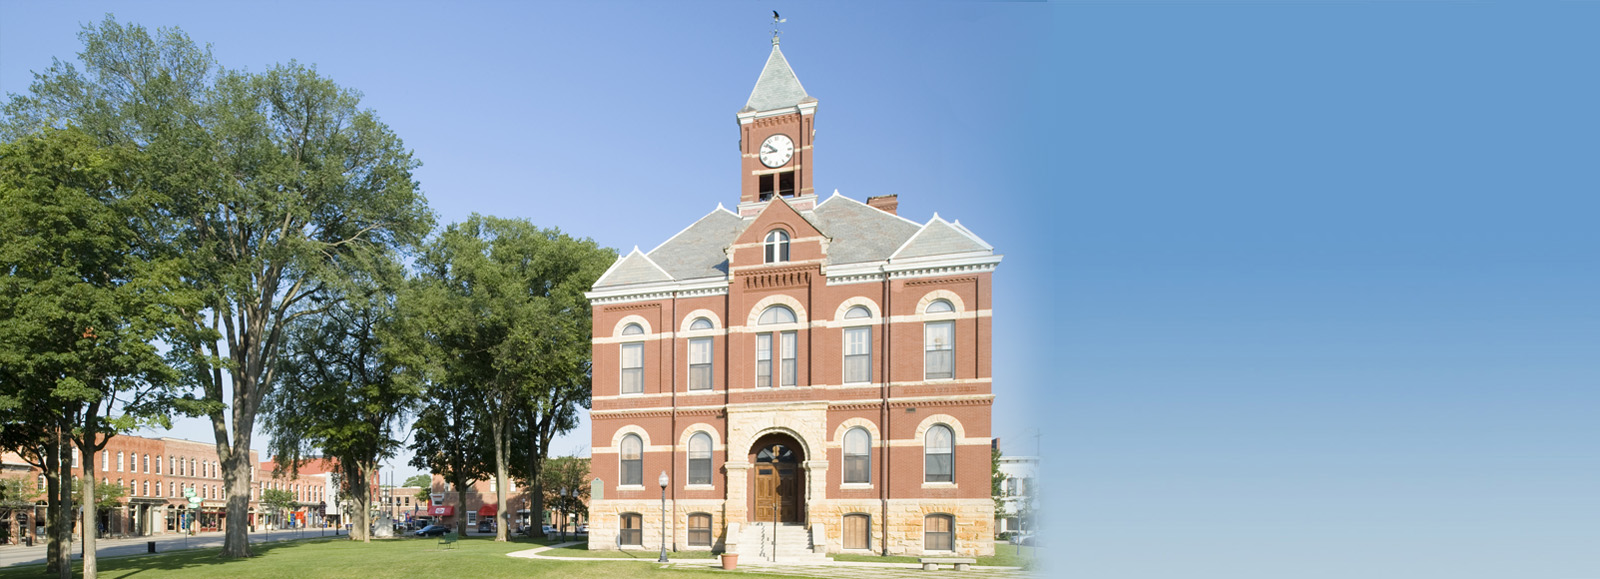 Howell Michigan historic Court House